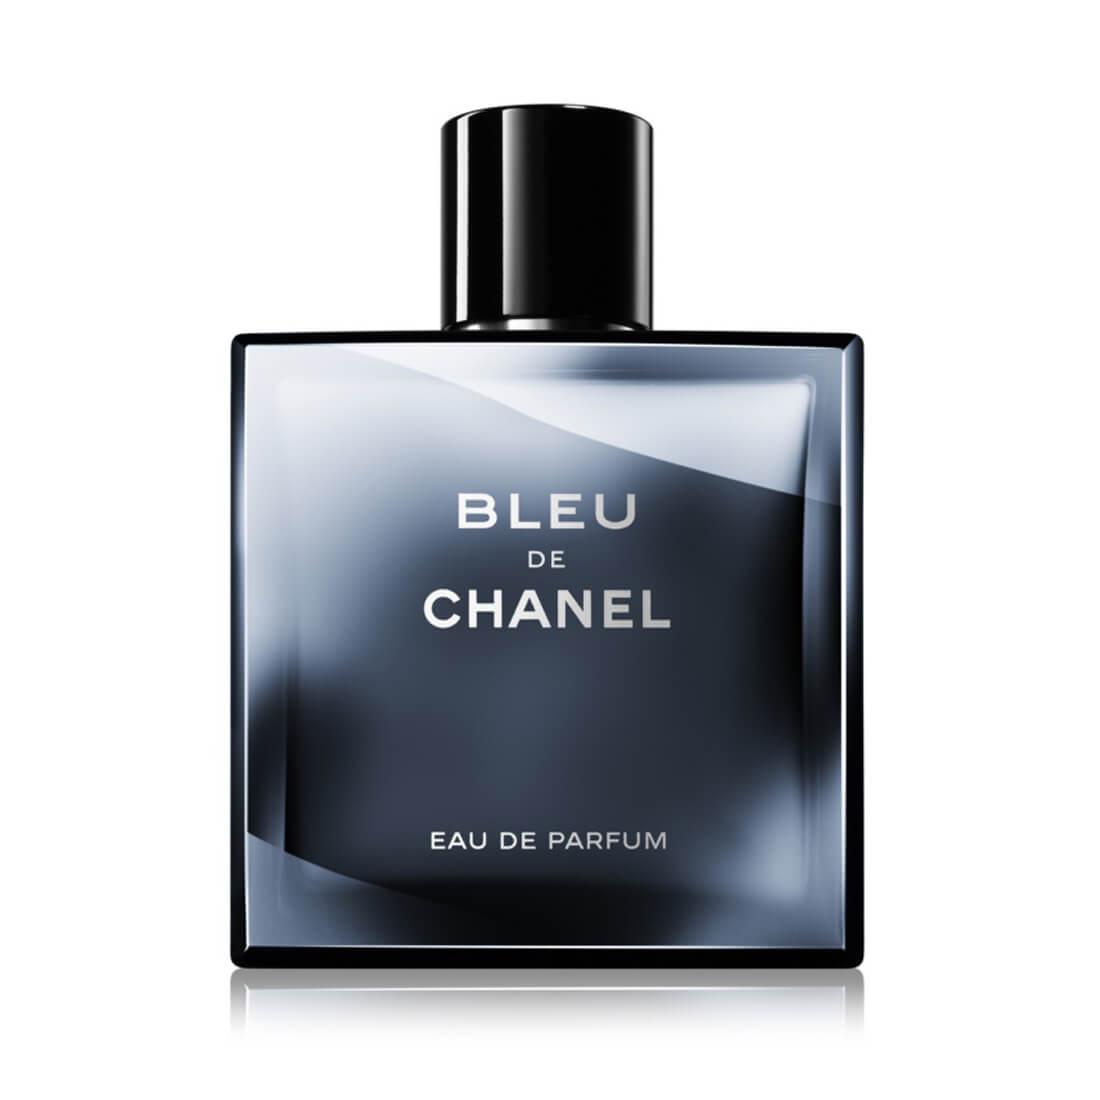 Chanel Bleu De Chanel Eau De Perfume For Men - 100ml